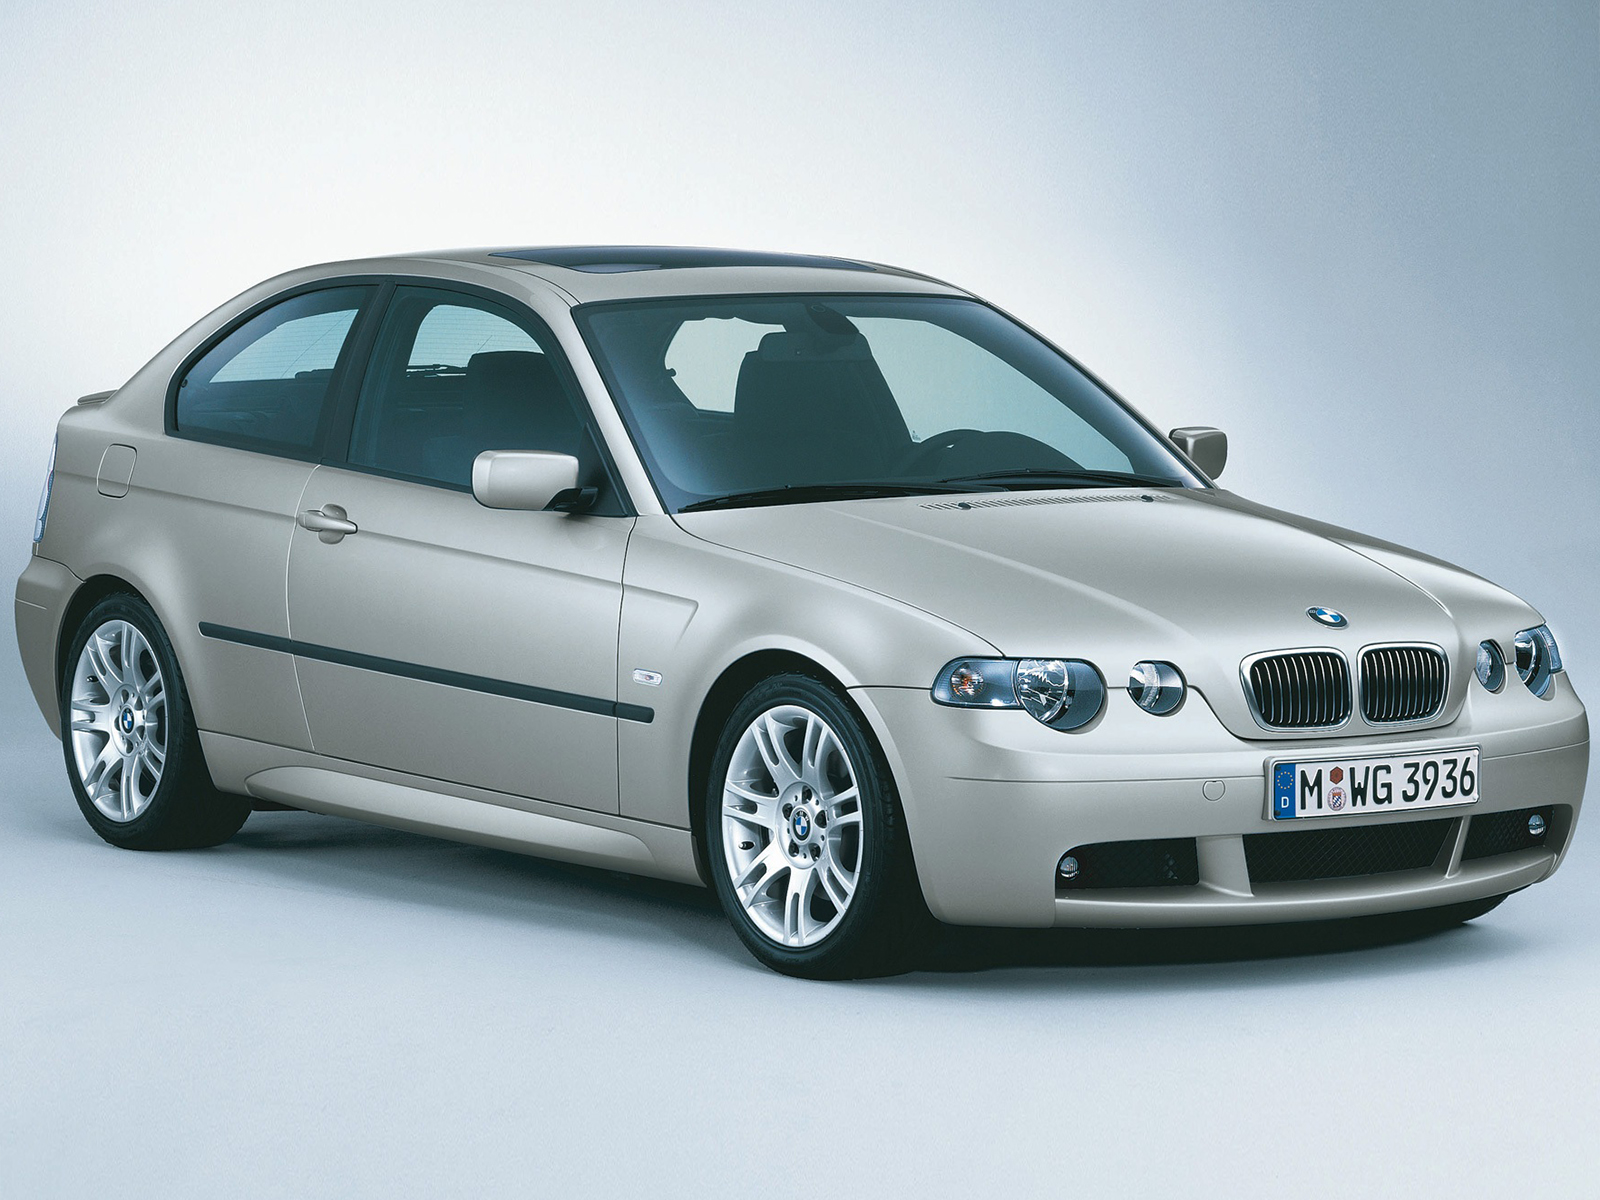 BMW 3 series 325ti 2001 photo - 5